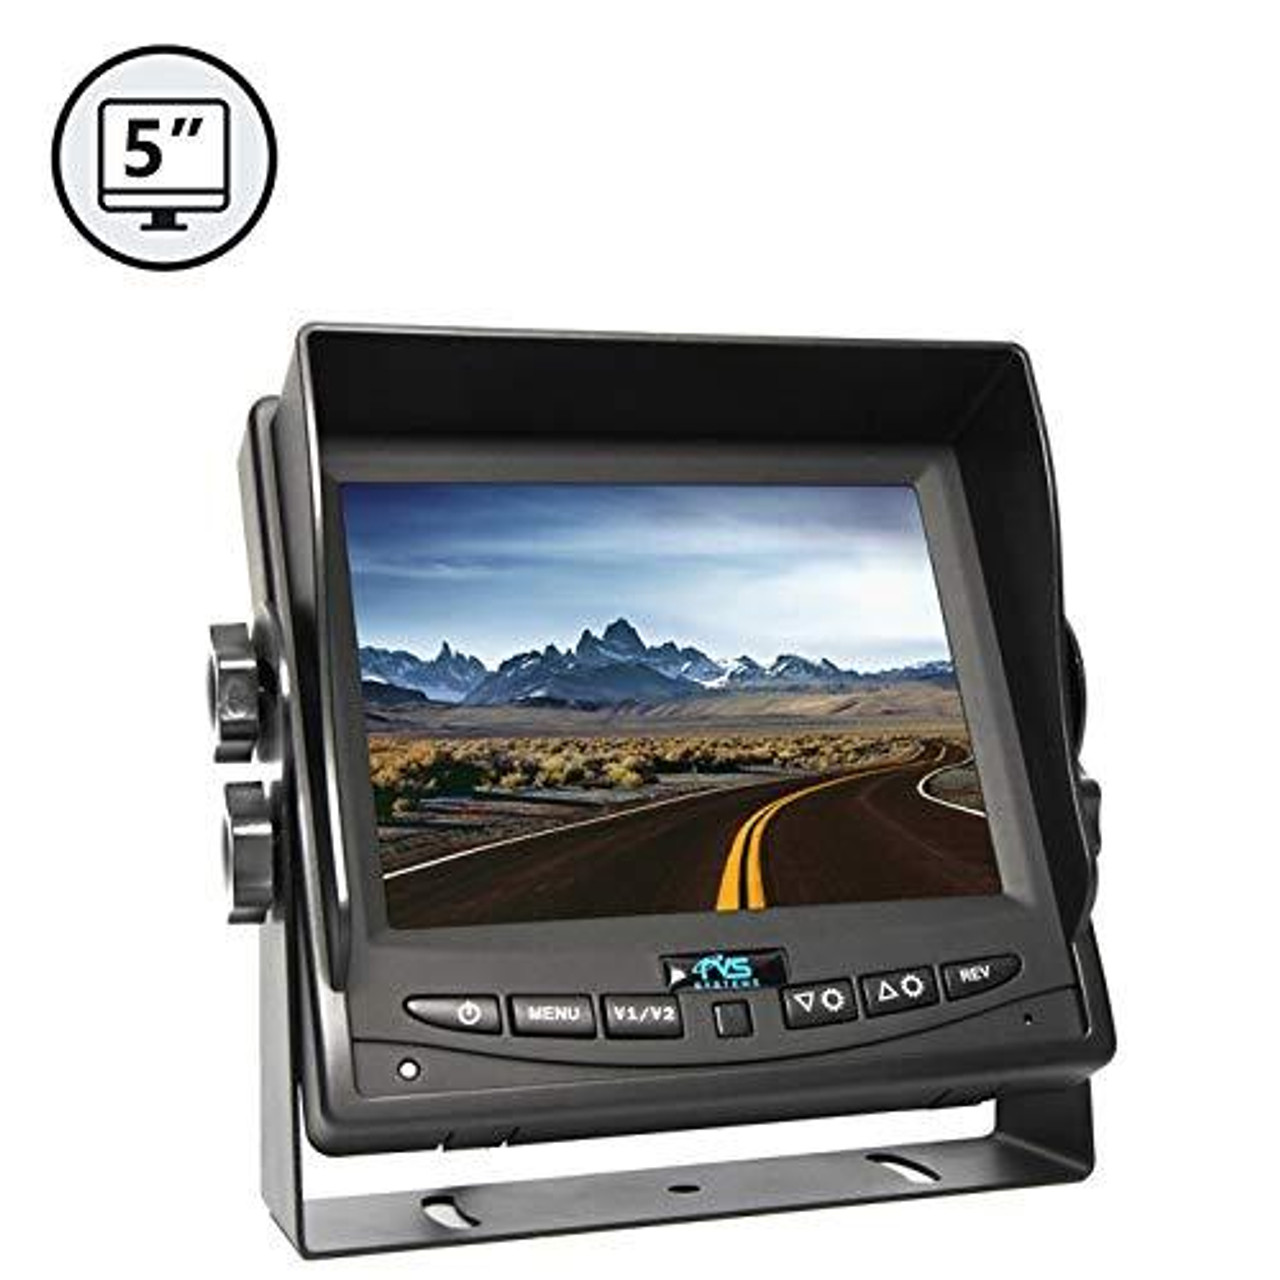 "5"" LED Digital Color Rear View Monitor (with Power Harness)"